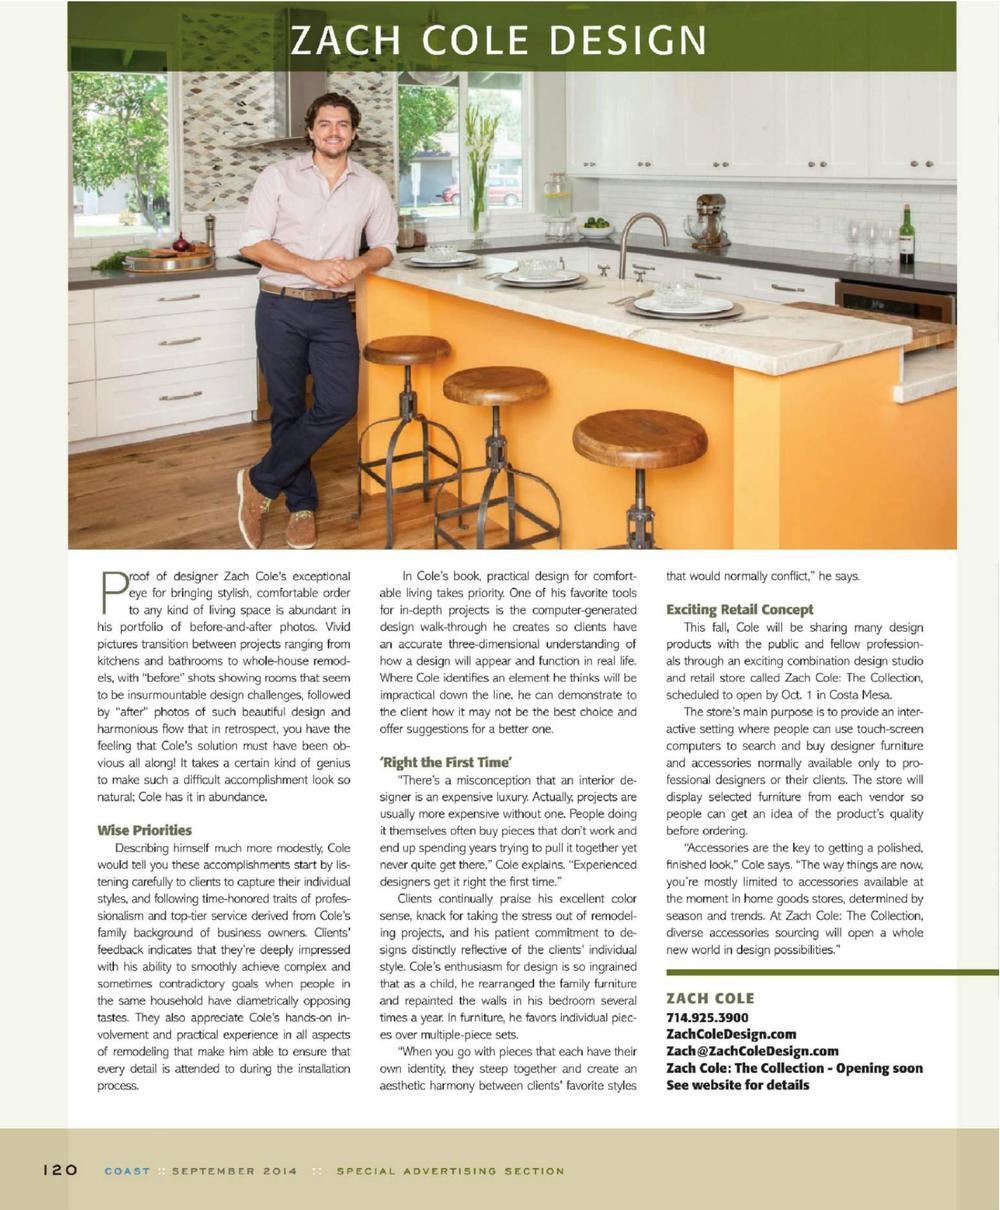 Zach Cole Design Orange County Interior Designer Coast Magazine   Sept